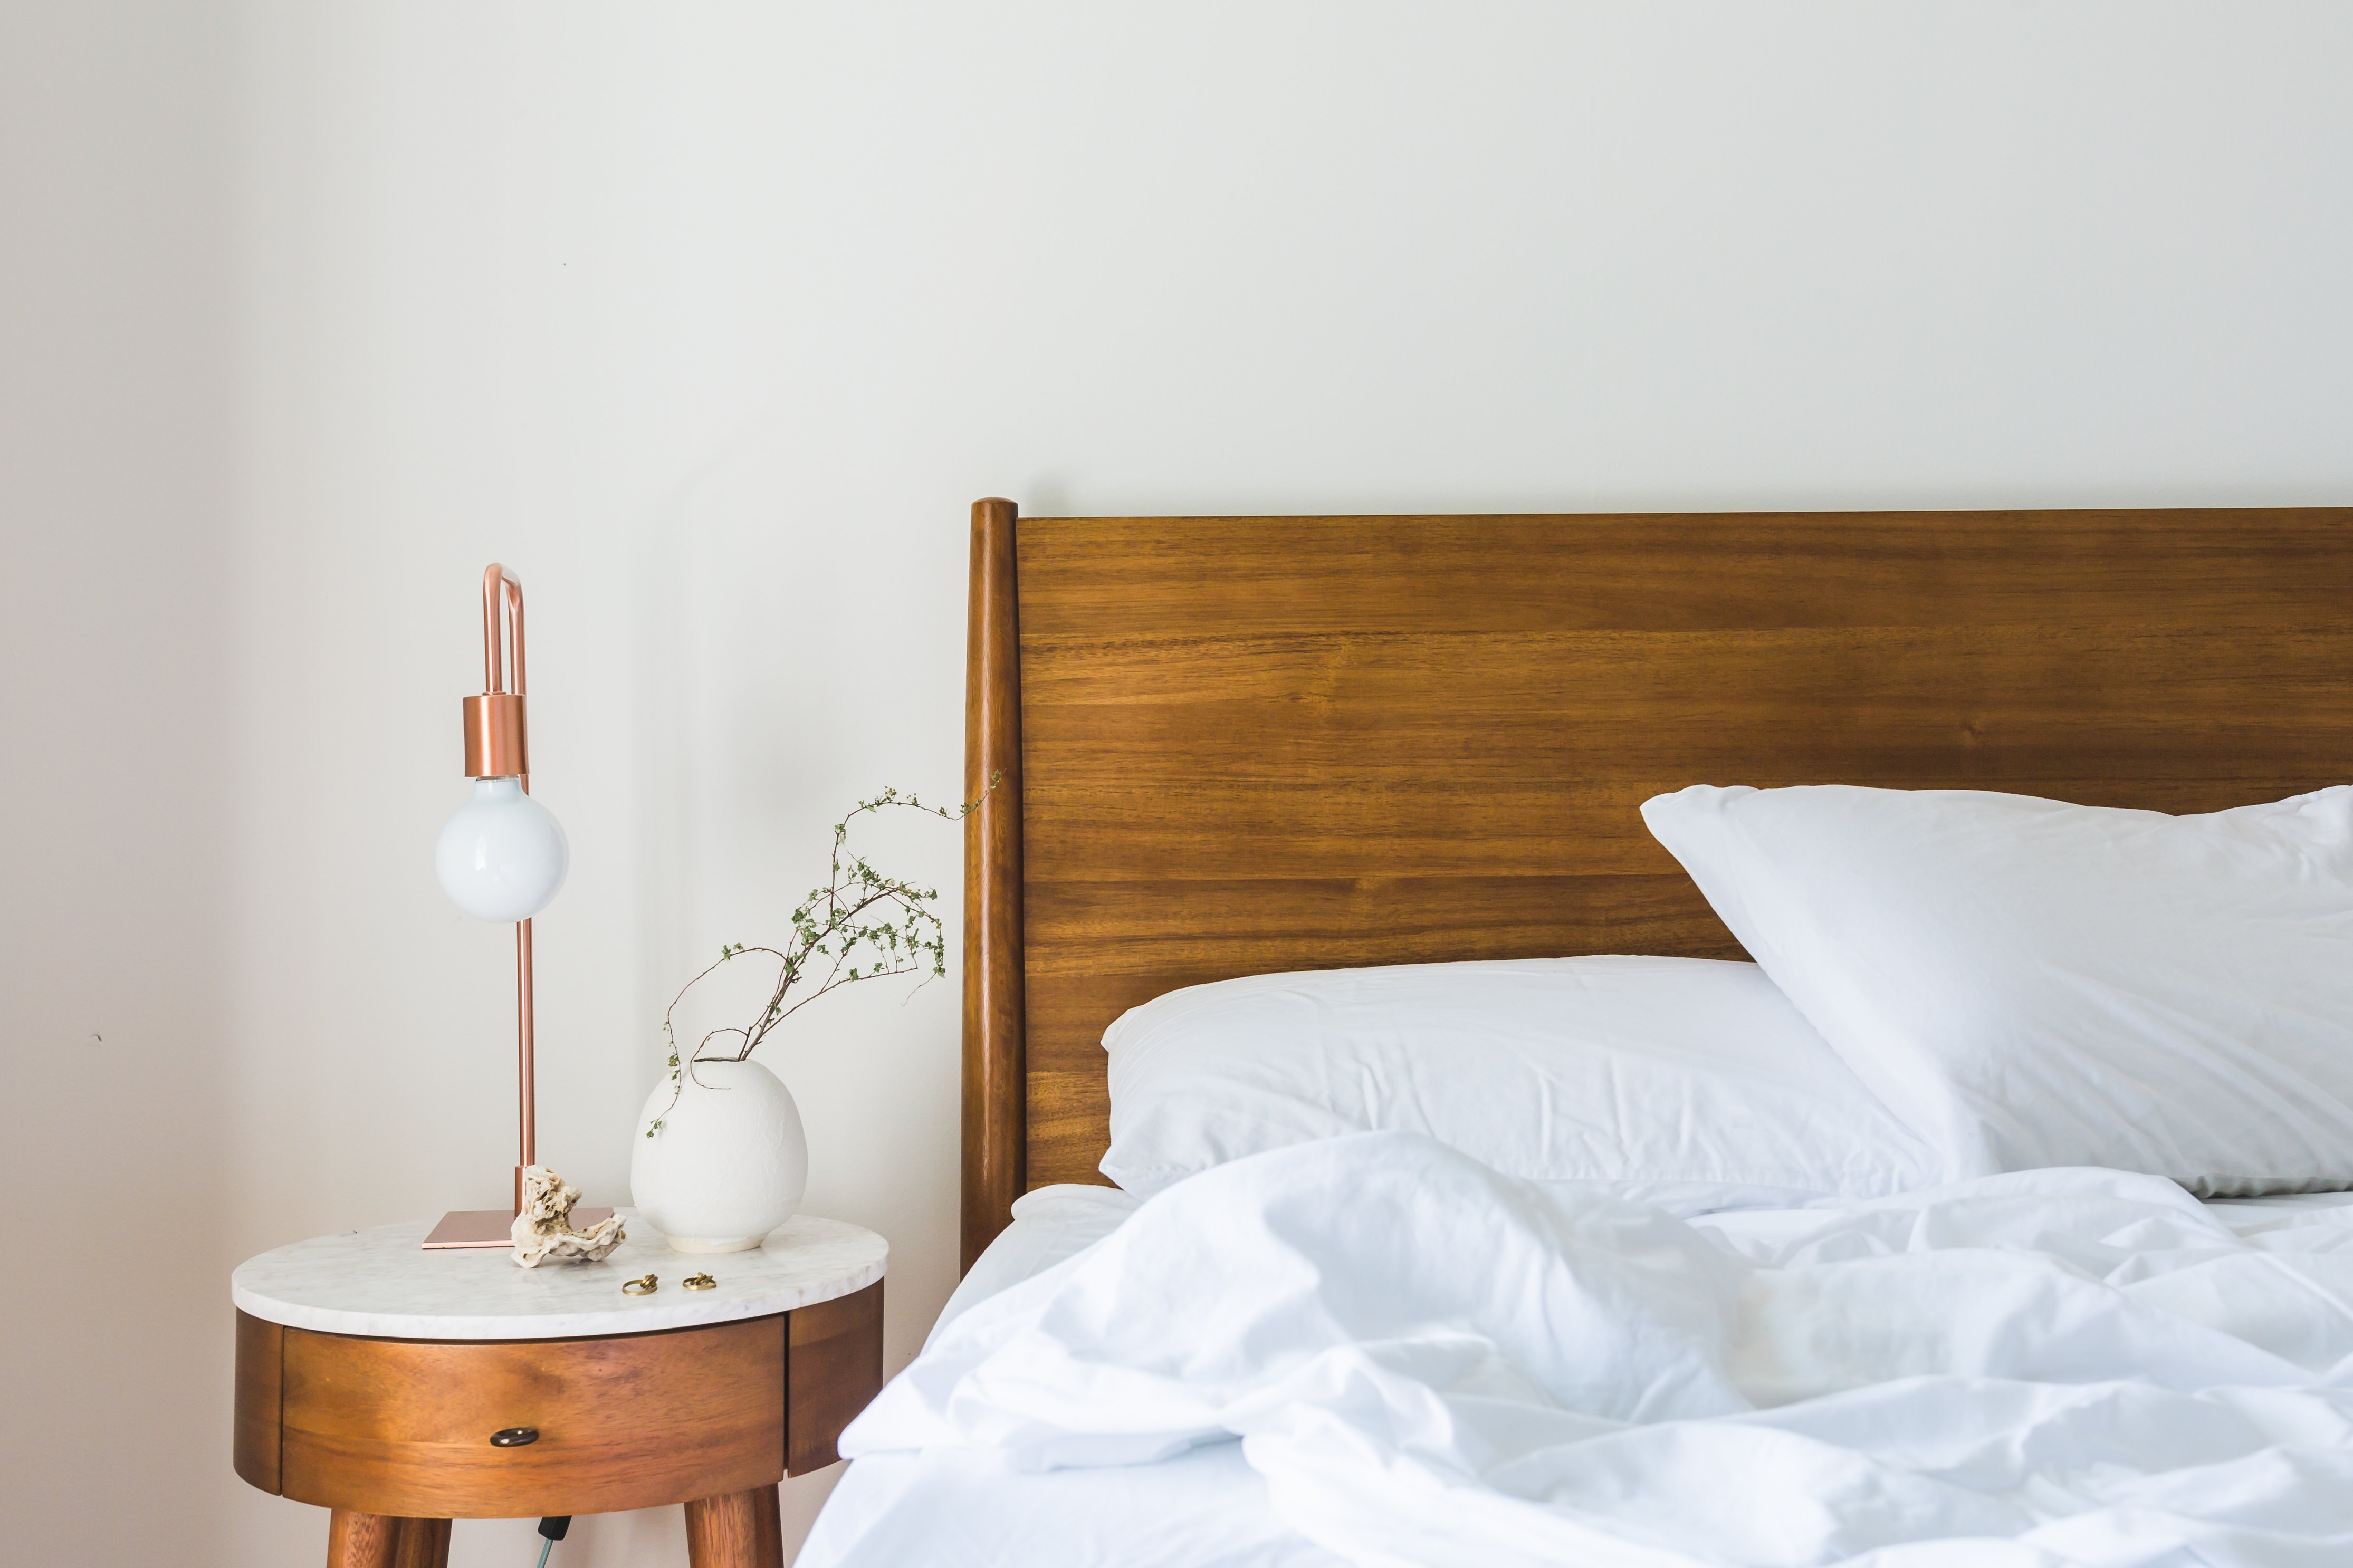 White Bedspread Beside Nightstand With White And Copper